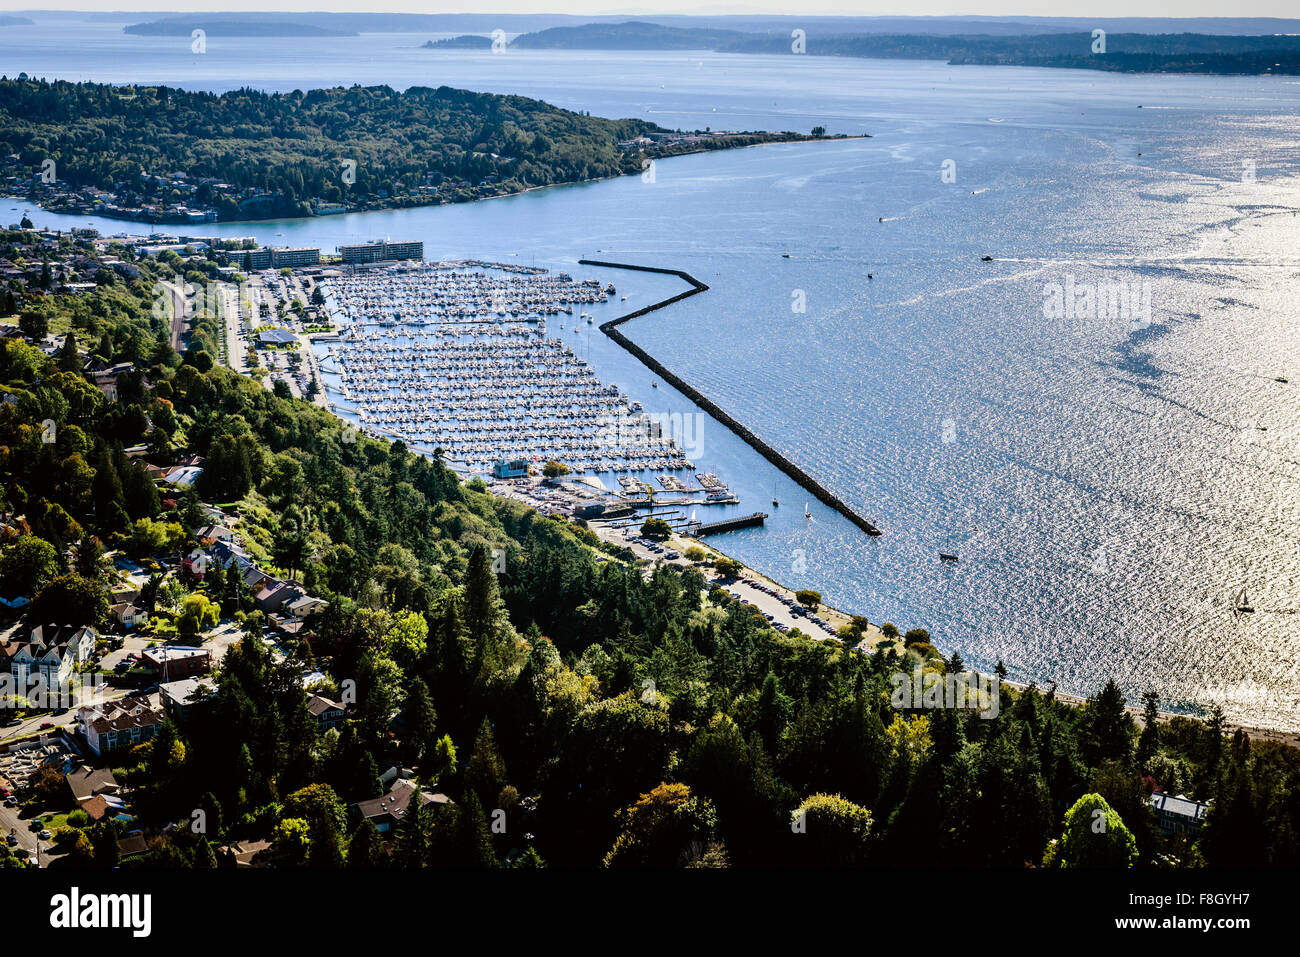 Aerial view of Seattle marina, Washington, United States - Stock Image